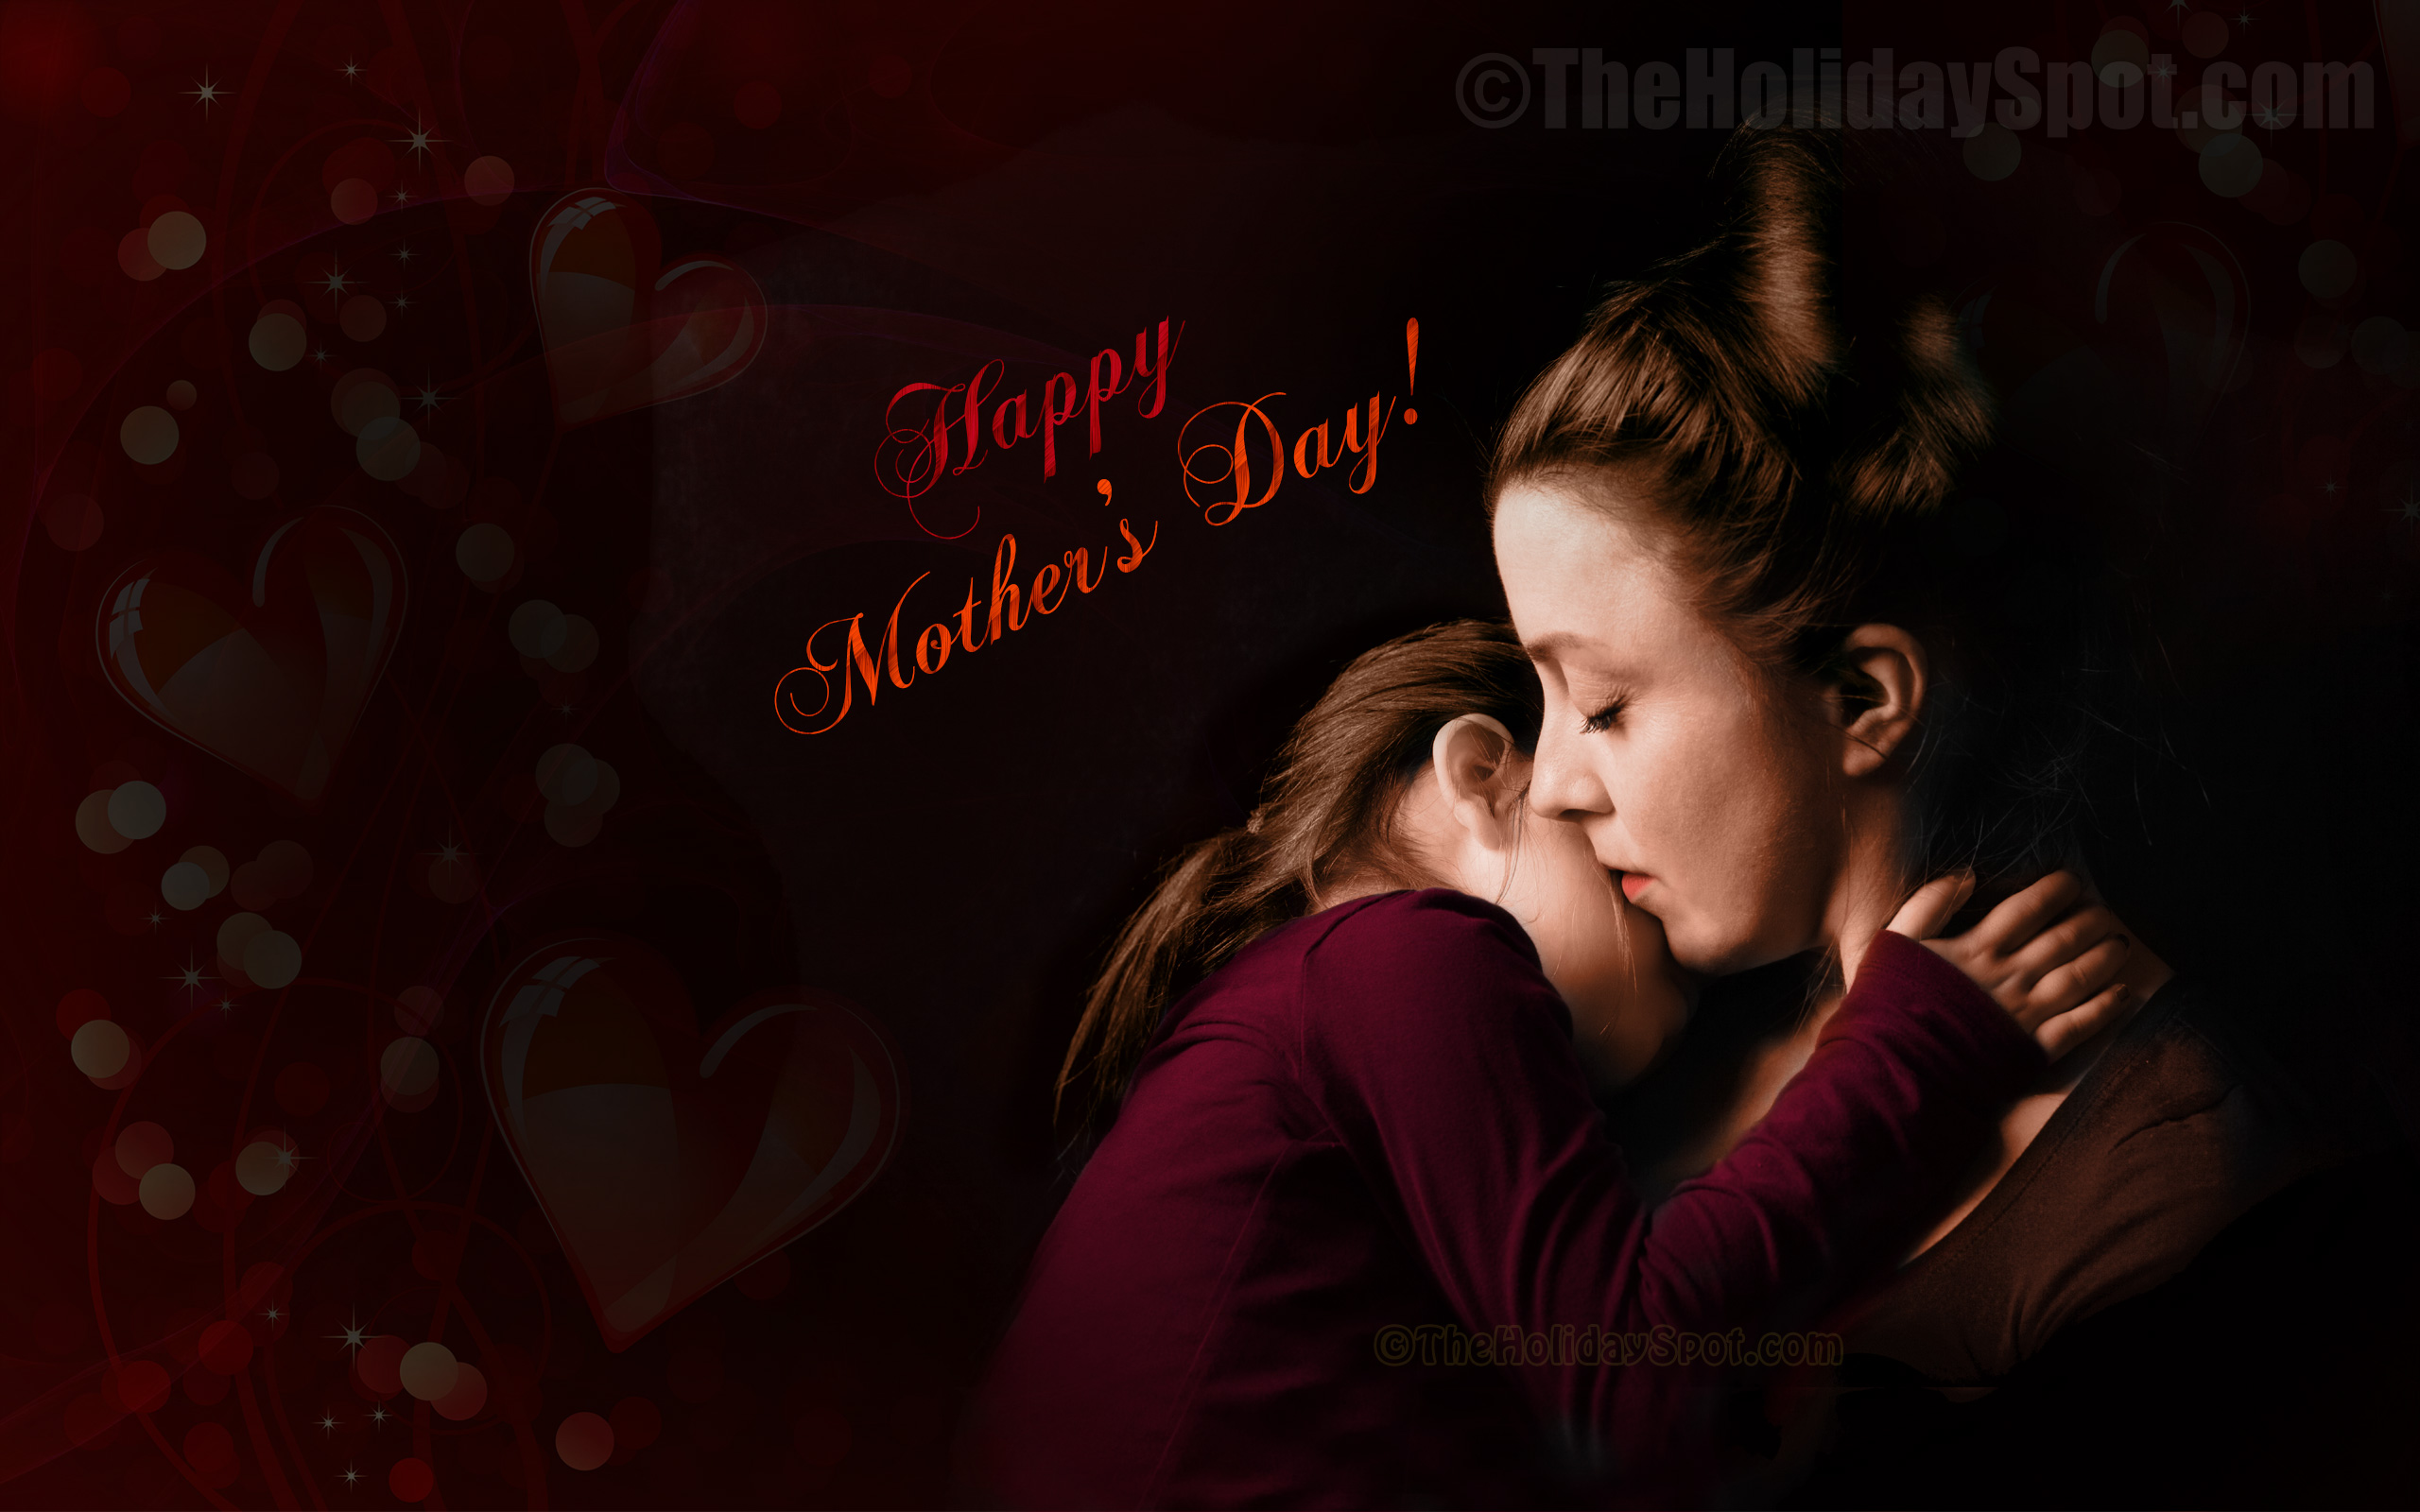 wallpaper with happy mothers day wishes